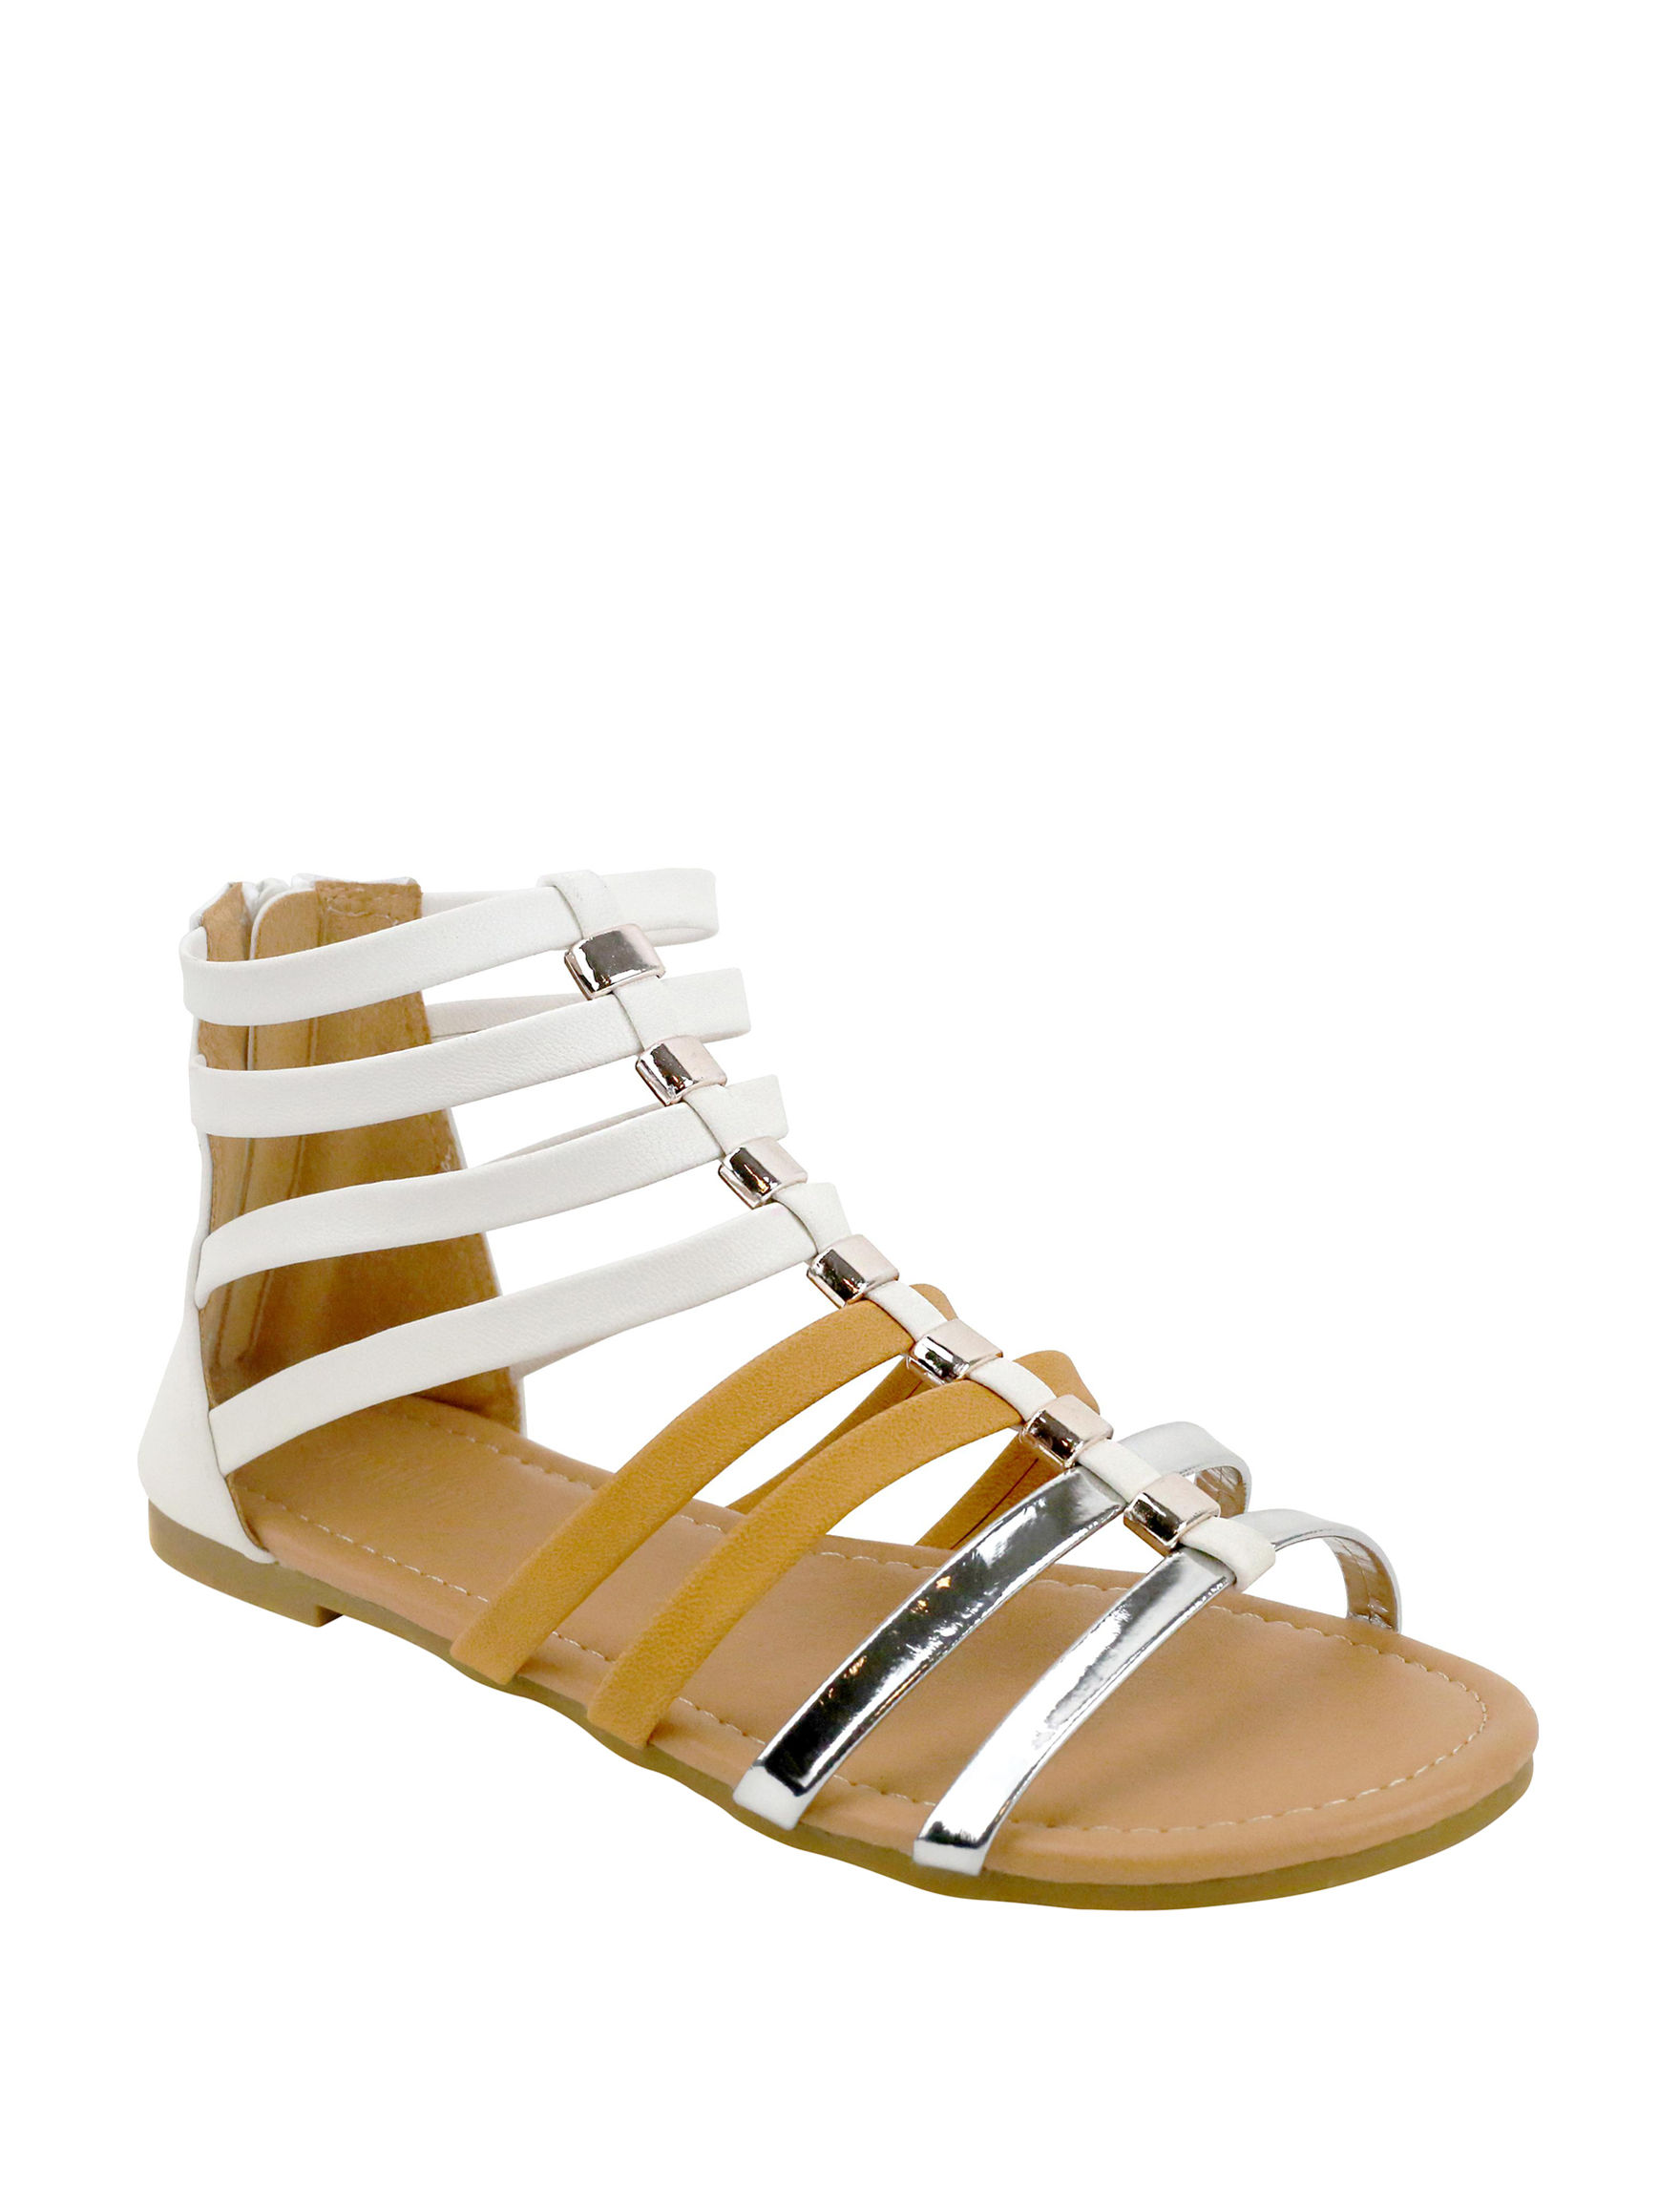 Olivia Miller White Flat Sandals Gladiators